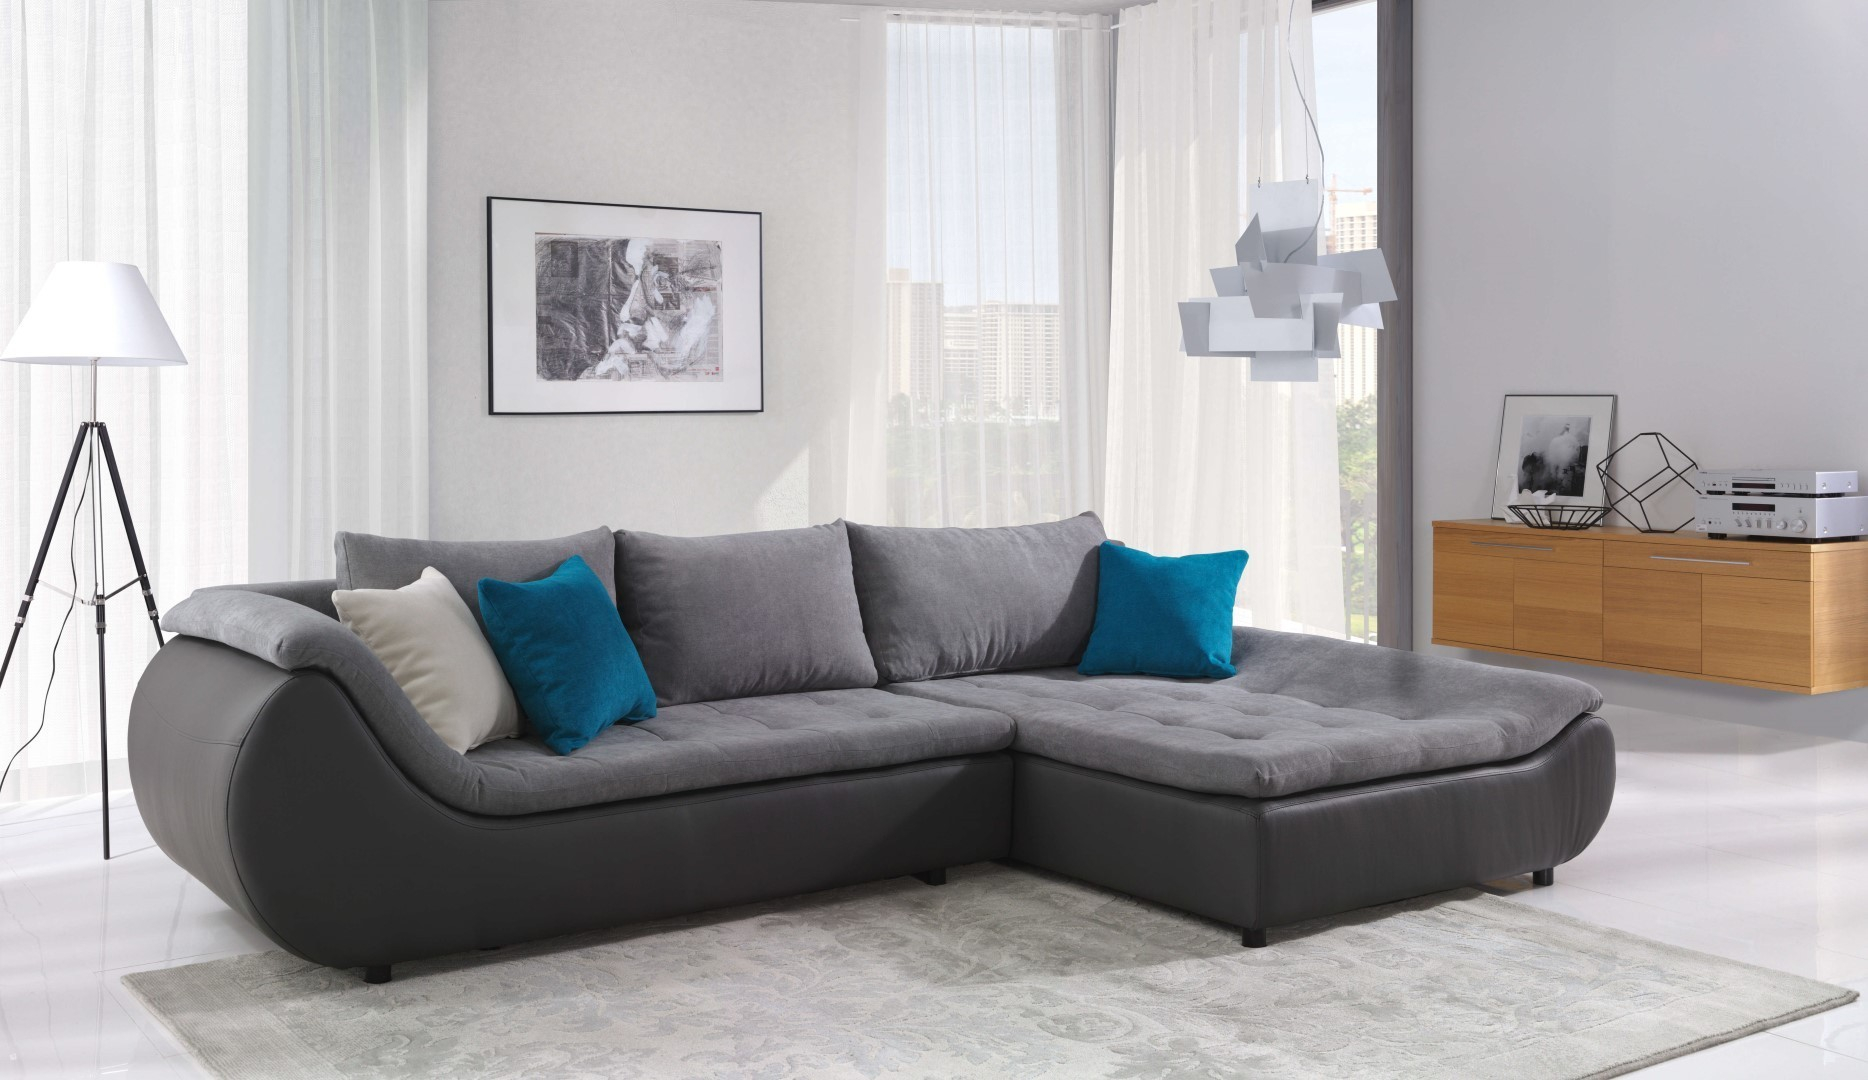 Sofa Couch Breathtaking Living Room Furniture Accent Using pertaining to IKEA Living Room Sets Under 300